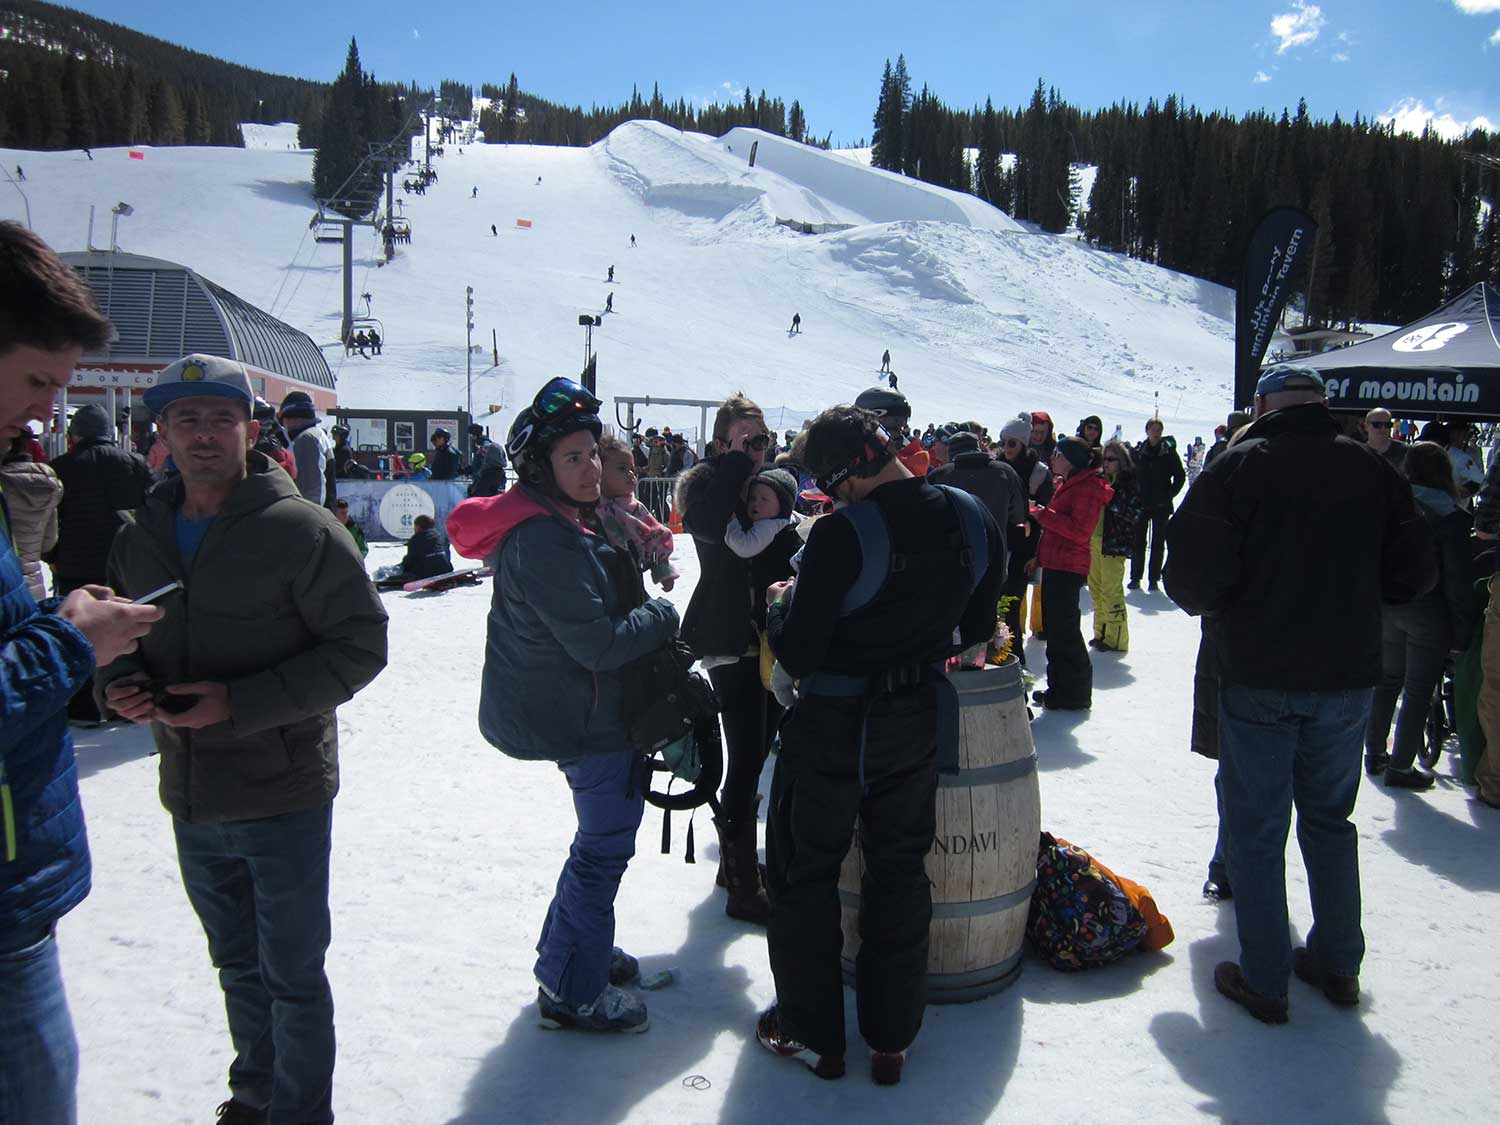 A crowd gathered for the 2018 Copper Uncorked event at Copper Mountain